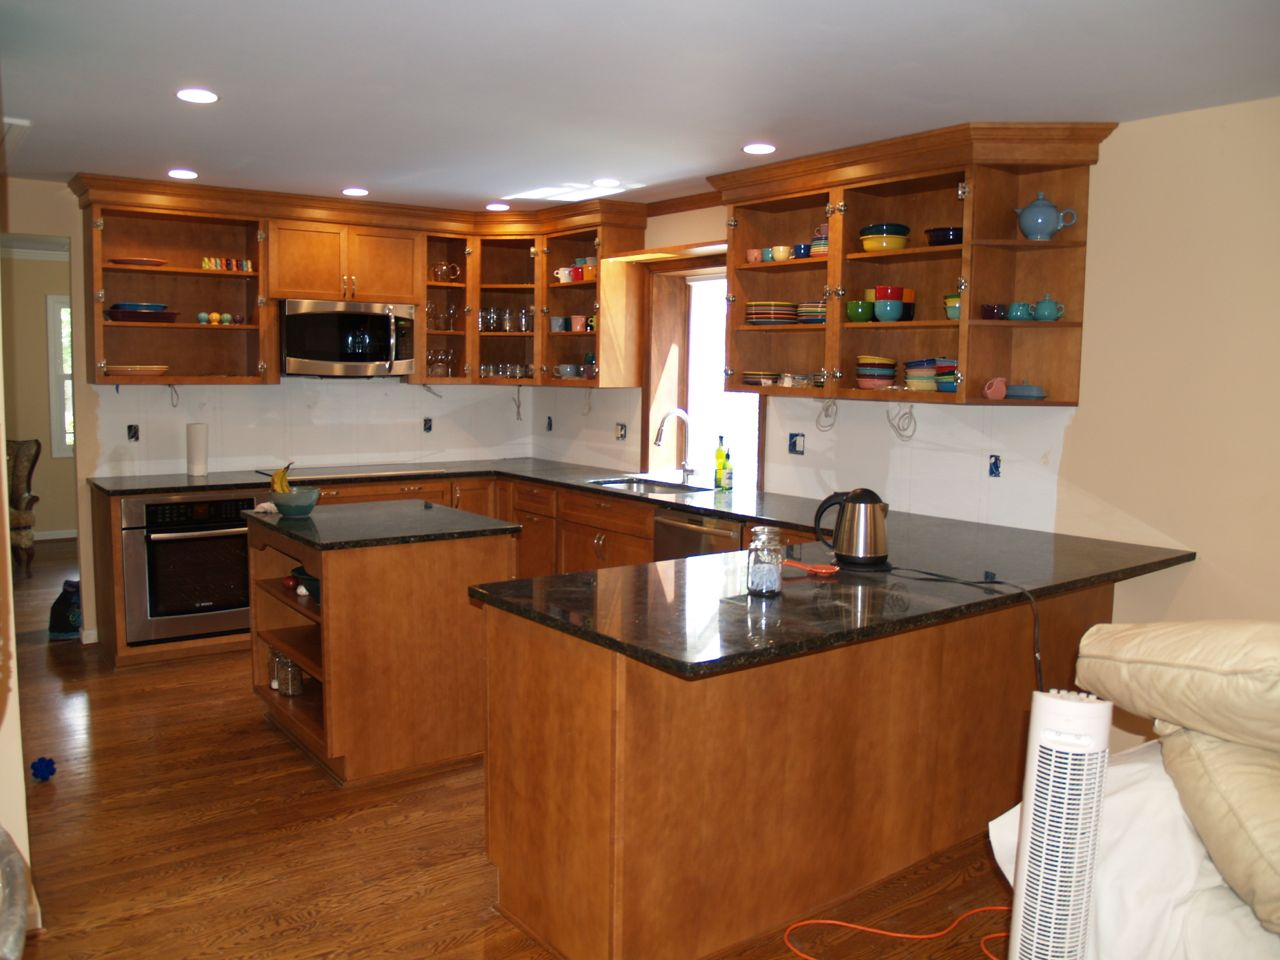 84 all cabinets upper kitchen cabinets New kitchen cabinets